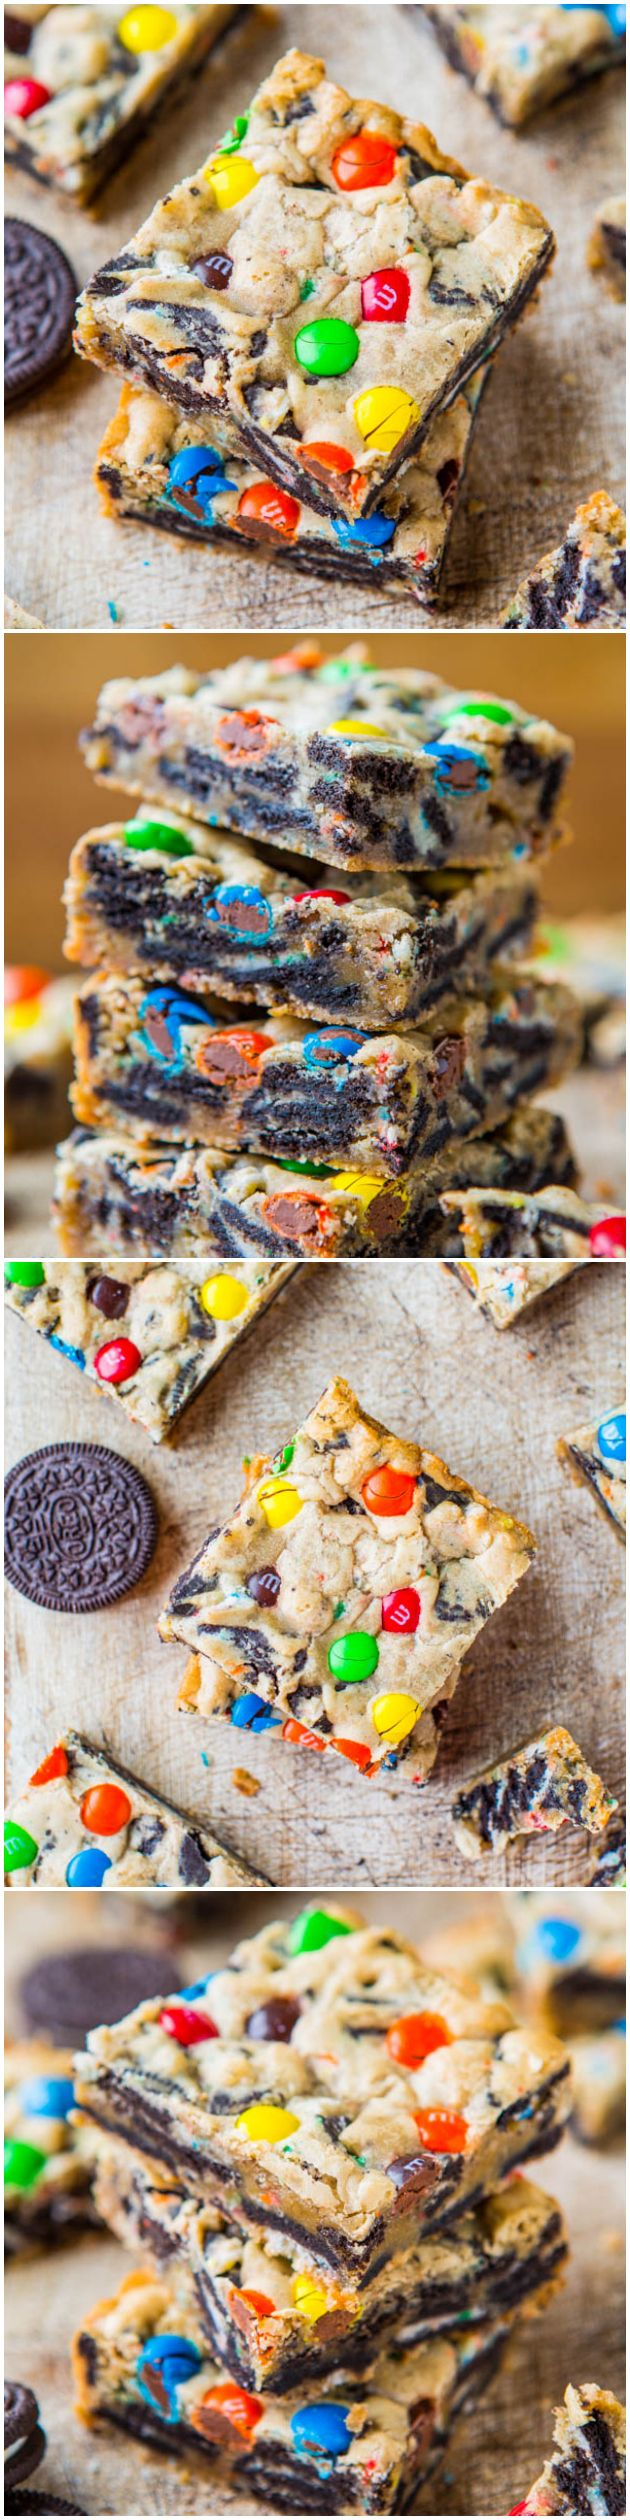 Loaded M&M Oreo Cookie Bars - Stuffed to the max with M&Ms and Oreos! Easy, no-mixer recipe that's ready in 30 minutes. Always a crowd favorite!